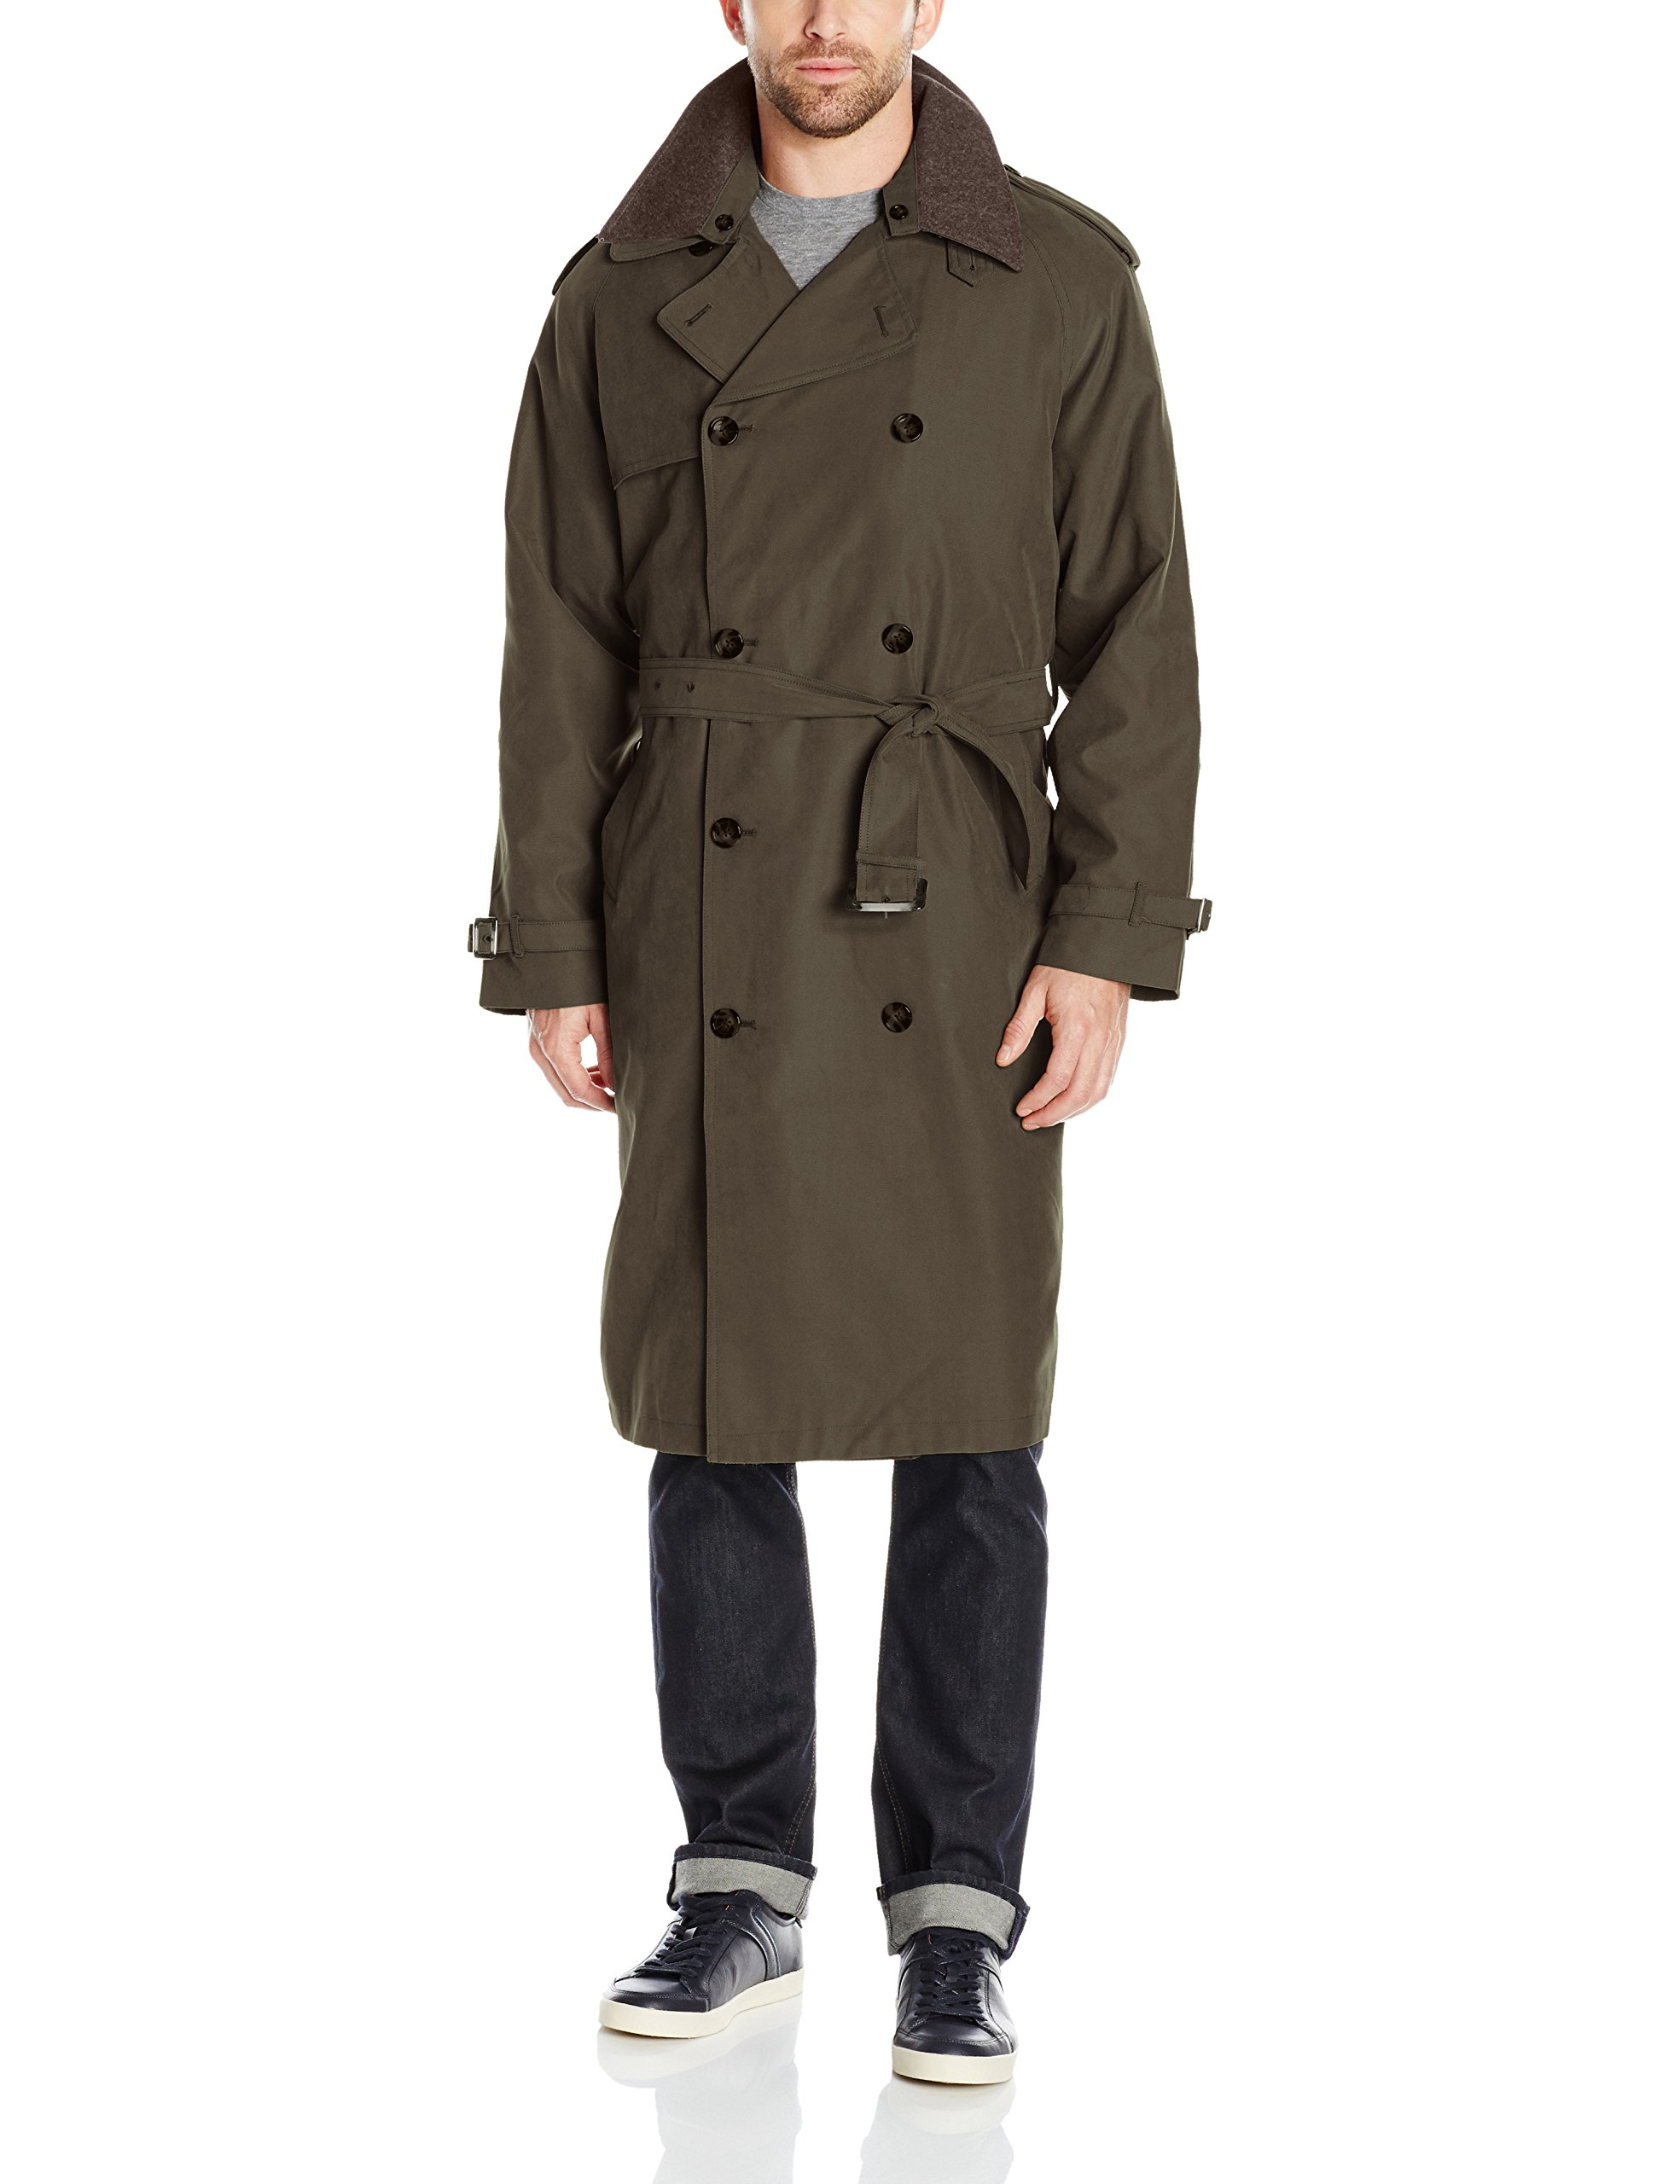 London Fog Men's Iconic Trench Coat, Covert, 36Regular by London Fog